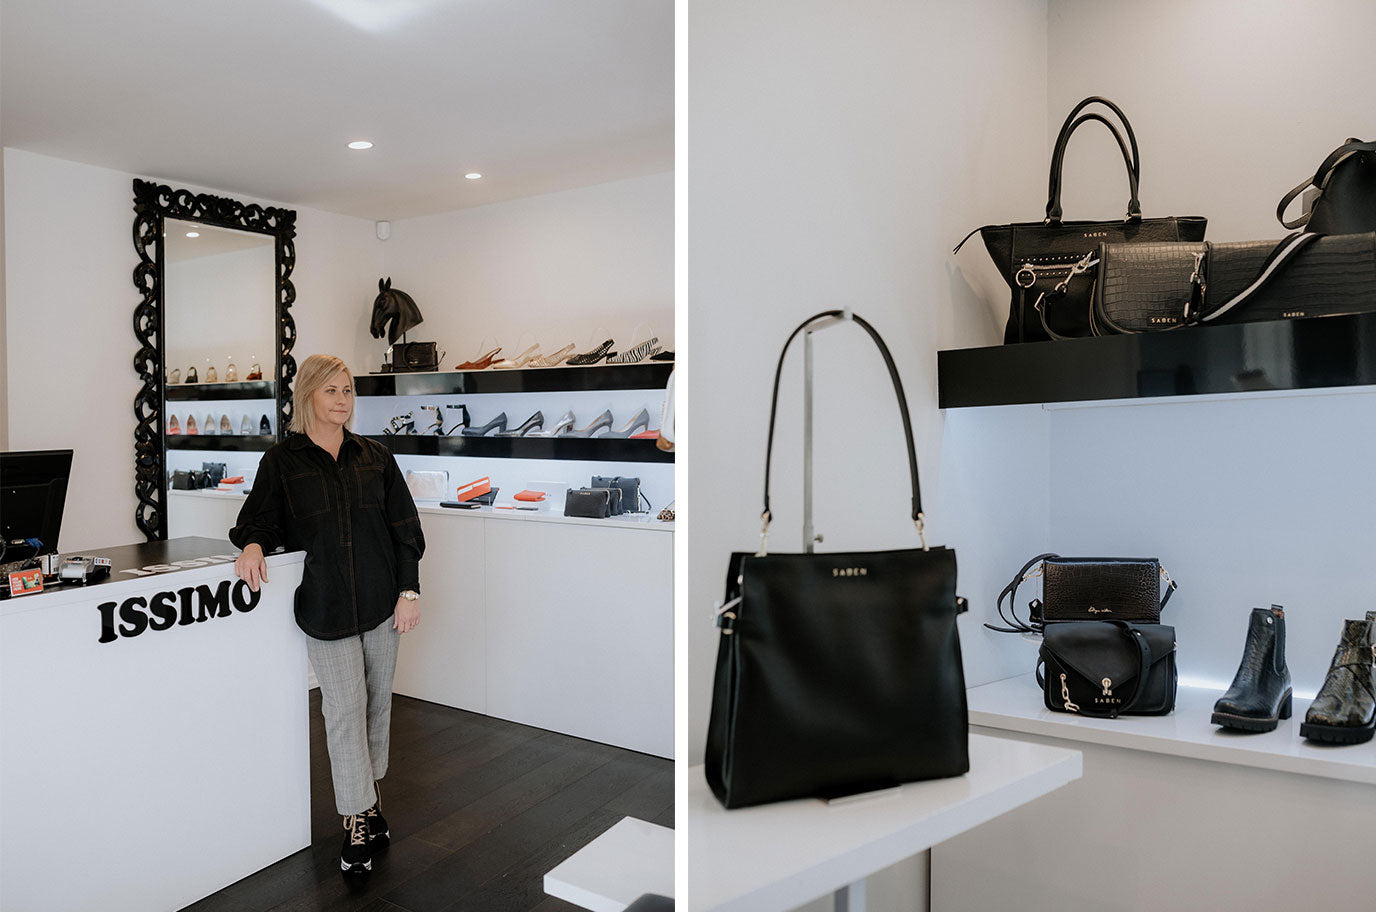 belinda from issimo christchurch standing in store with saben handbags and shoes